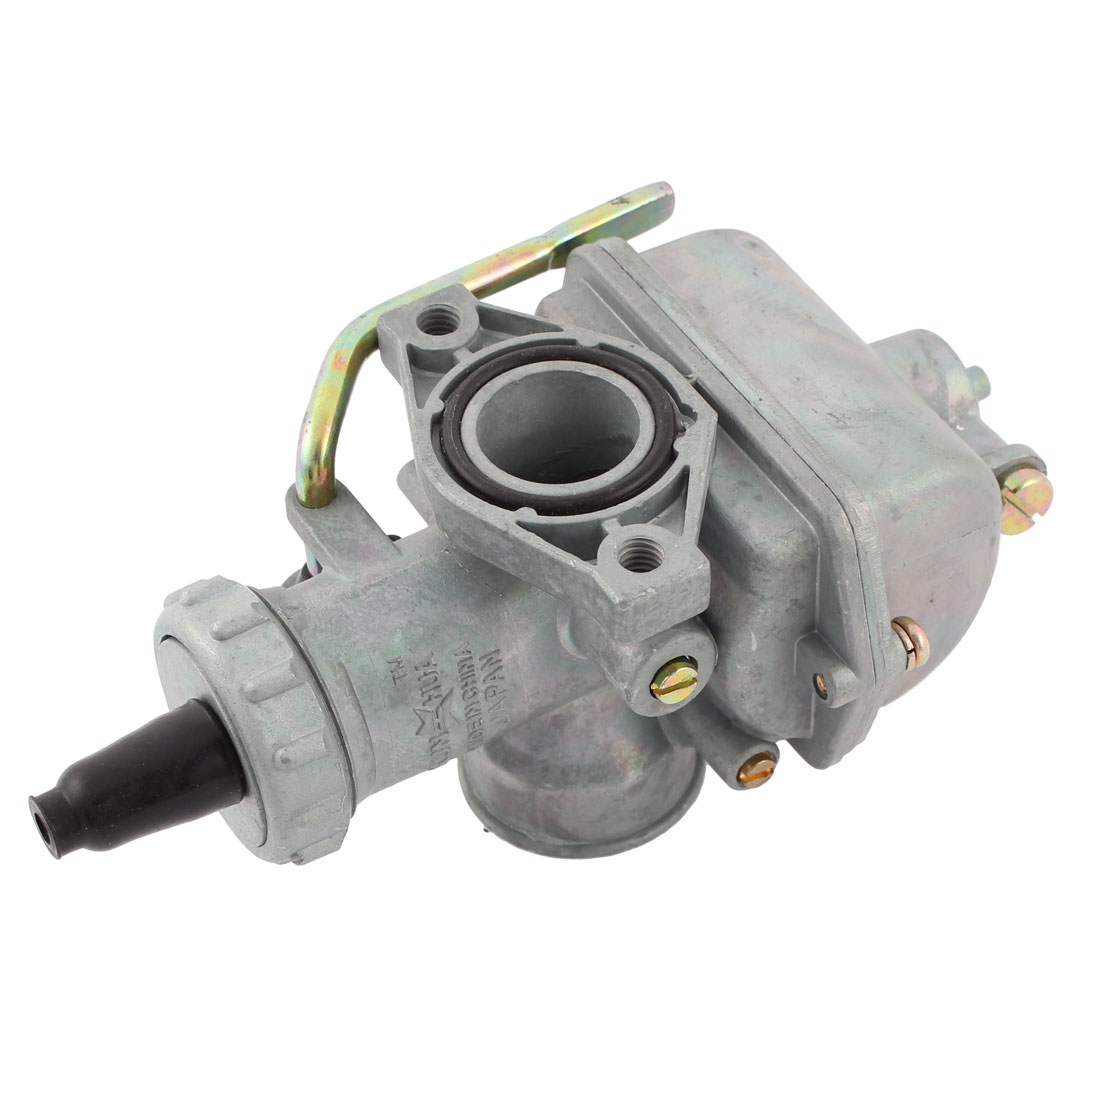 Replacement XR-80 Generator Engine Carb Carburetor for Motorcycle